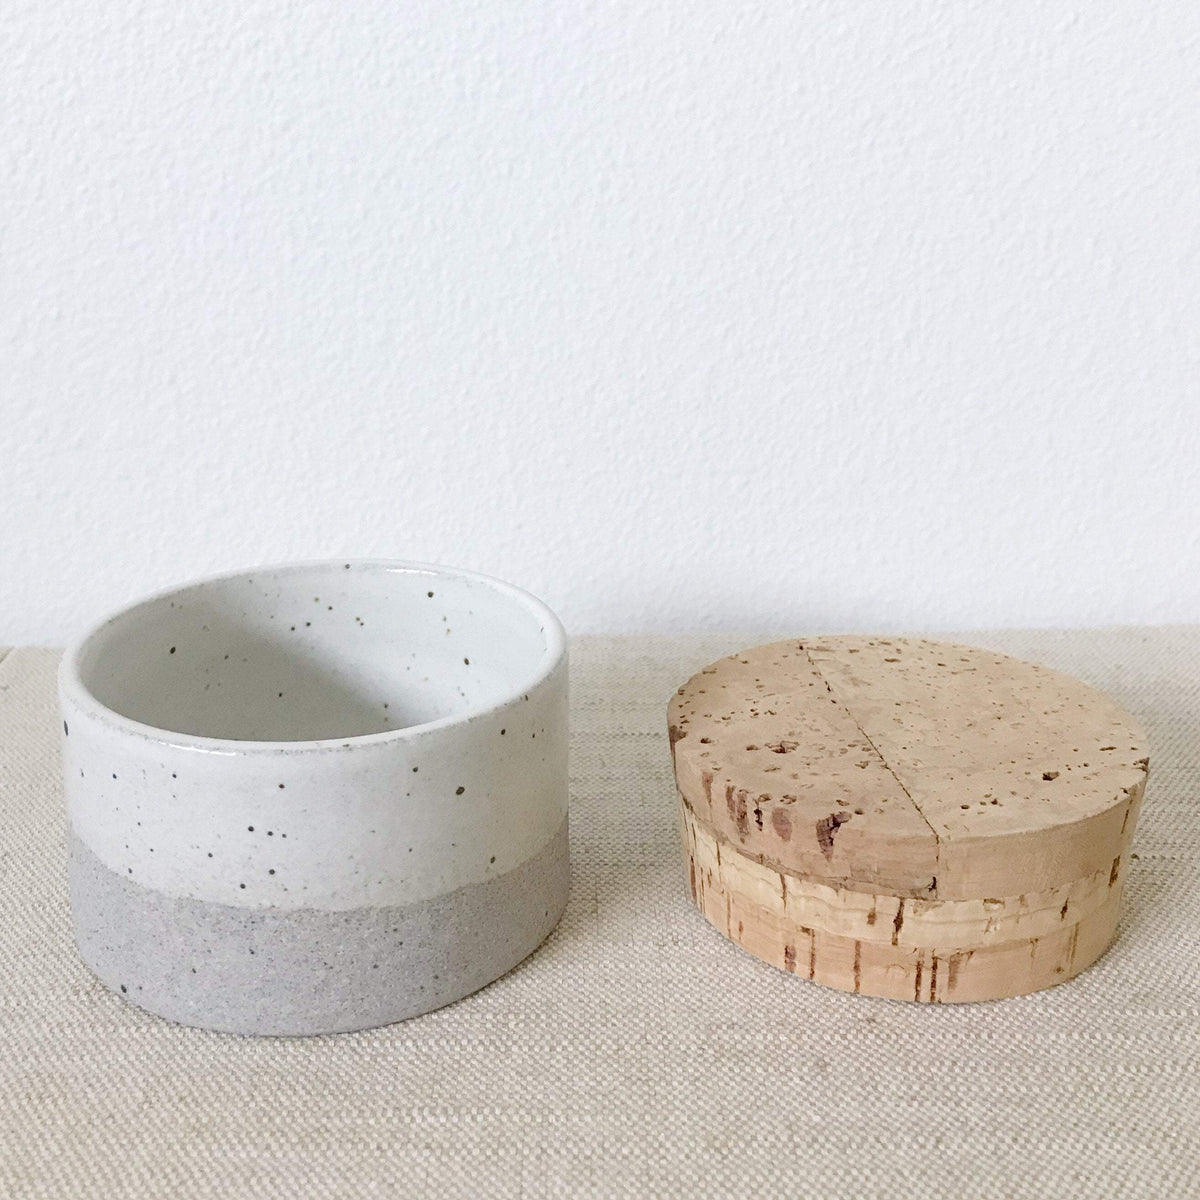 Humble Ceramics Canister 3.5 x 2 in greystone